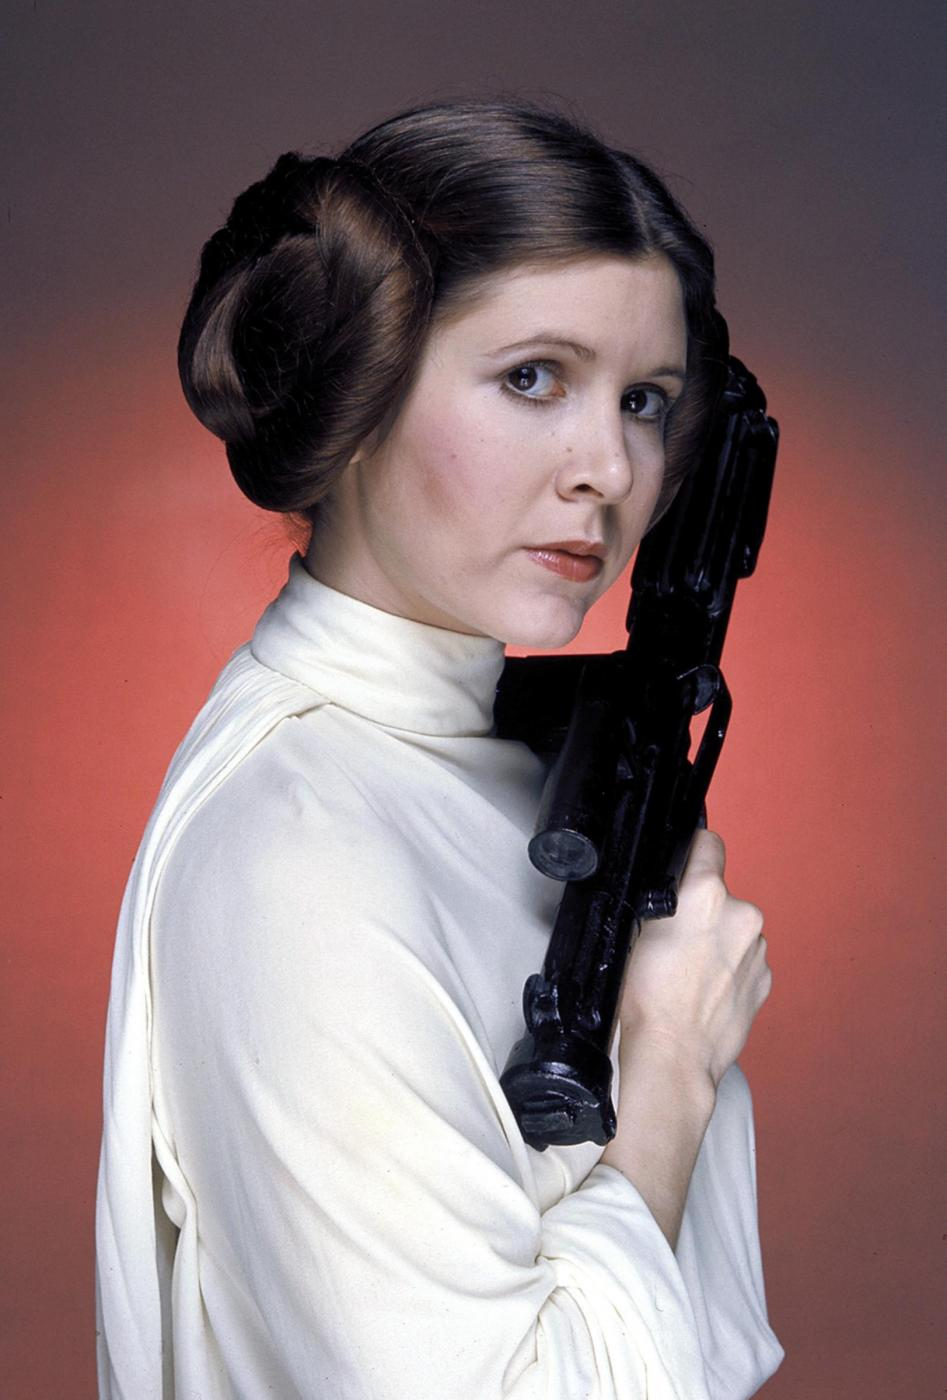 Morta attrice Carrie Fisher